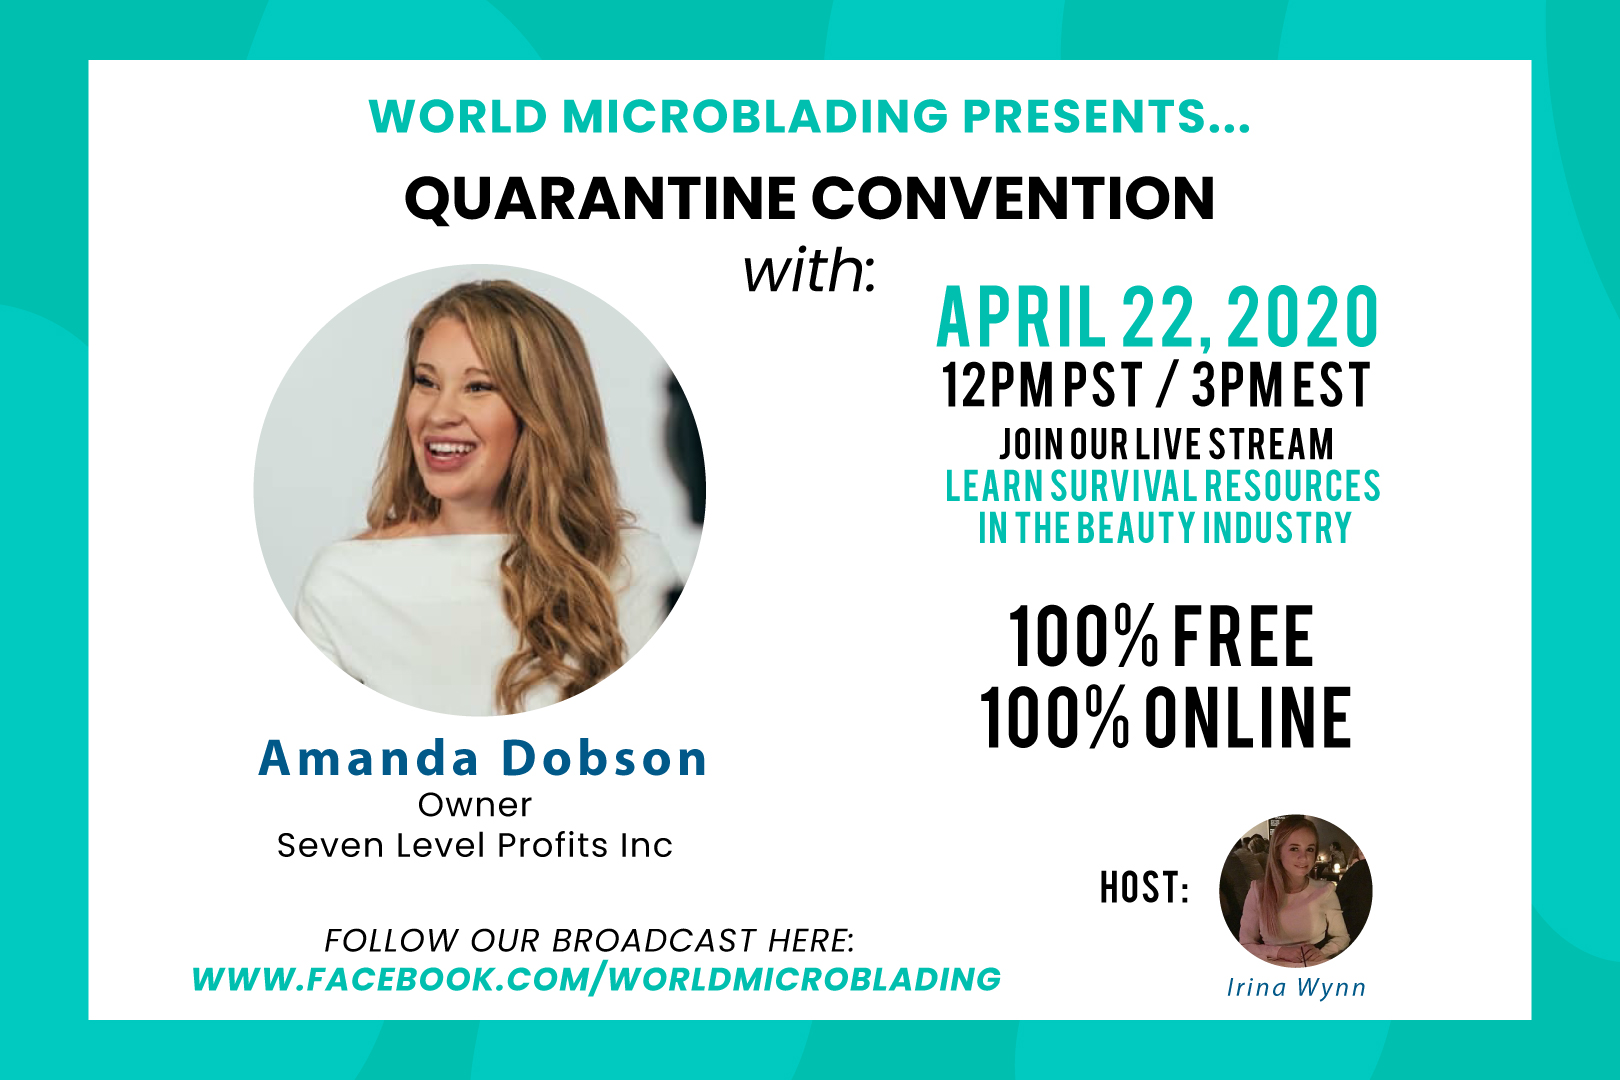 Amanda Dobson: LIVE at the Quarantine Convention for the Beauty Industry